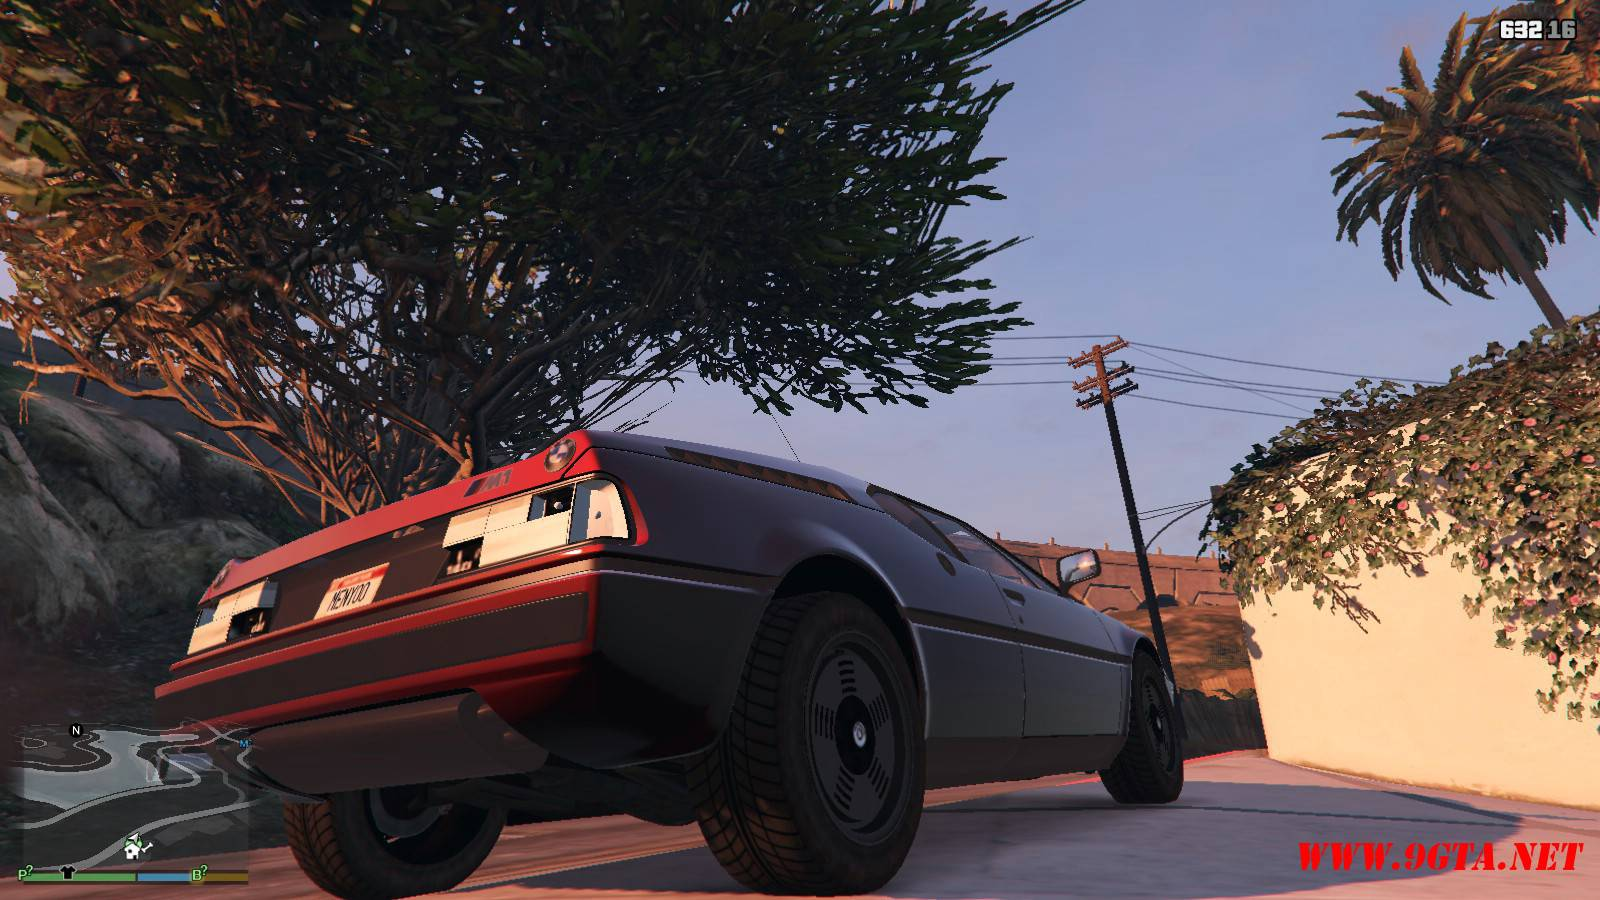 1981 BMW M1 v2.0 Mod For GTA5 (13)